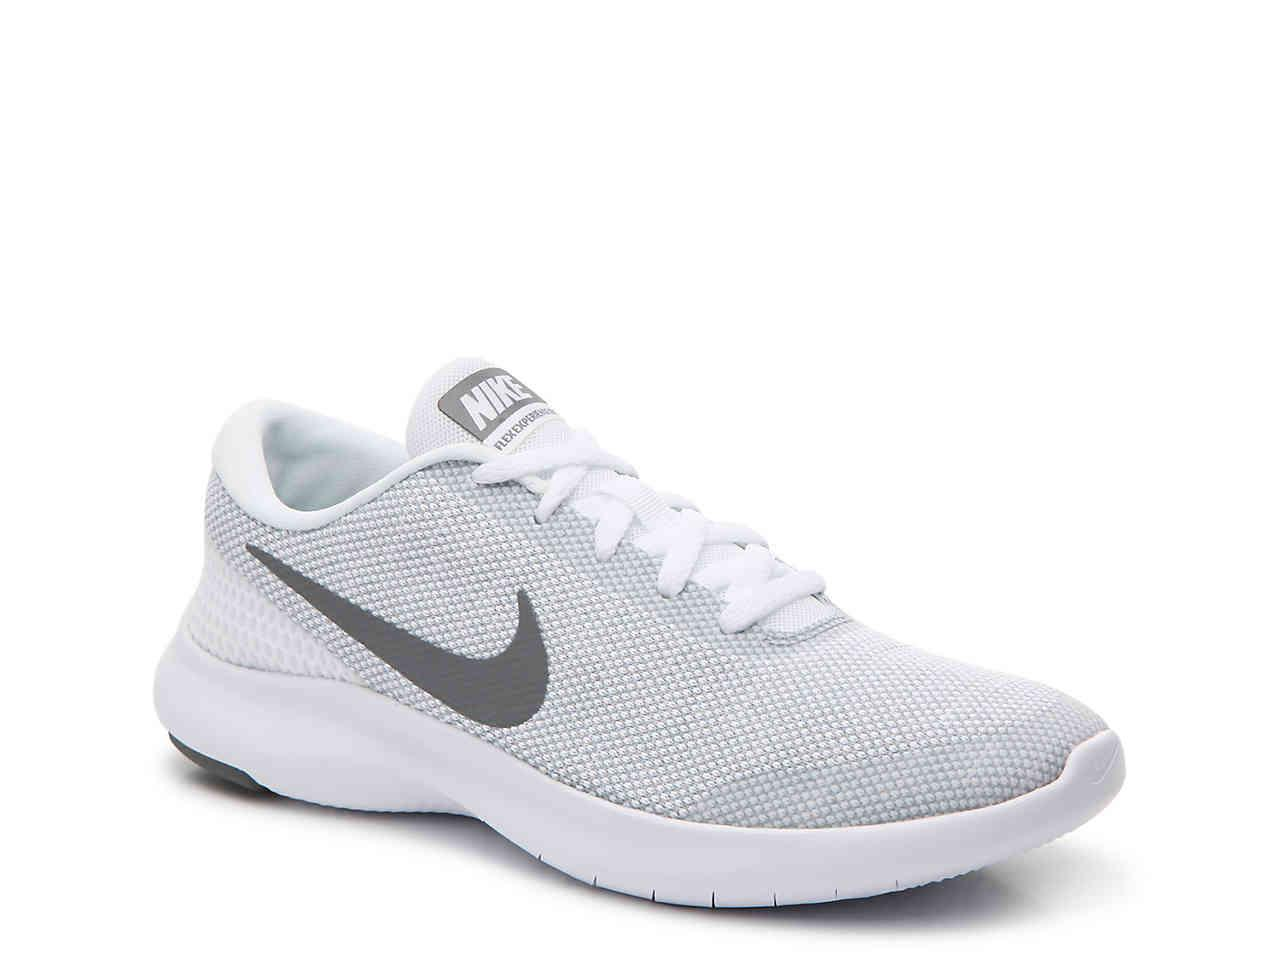 new product 52144 93e91 Nike Flex Experience Rn 7 Lightweight Running Shoe in White - Lyst